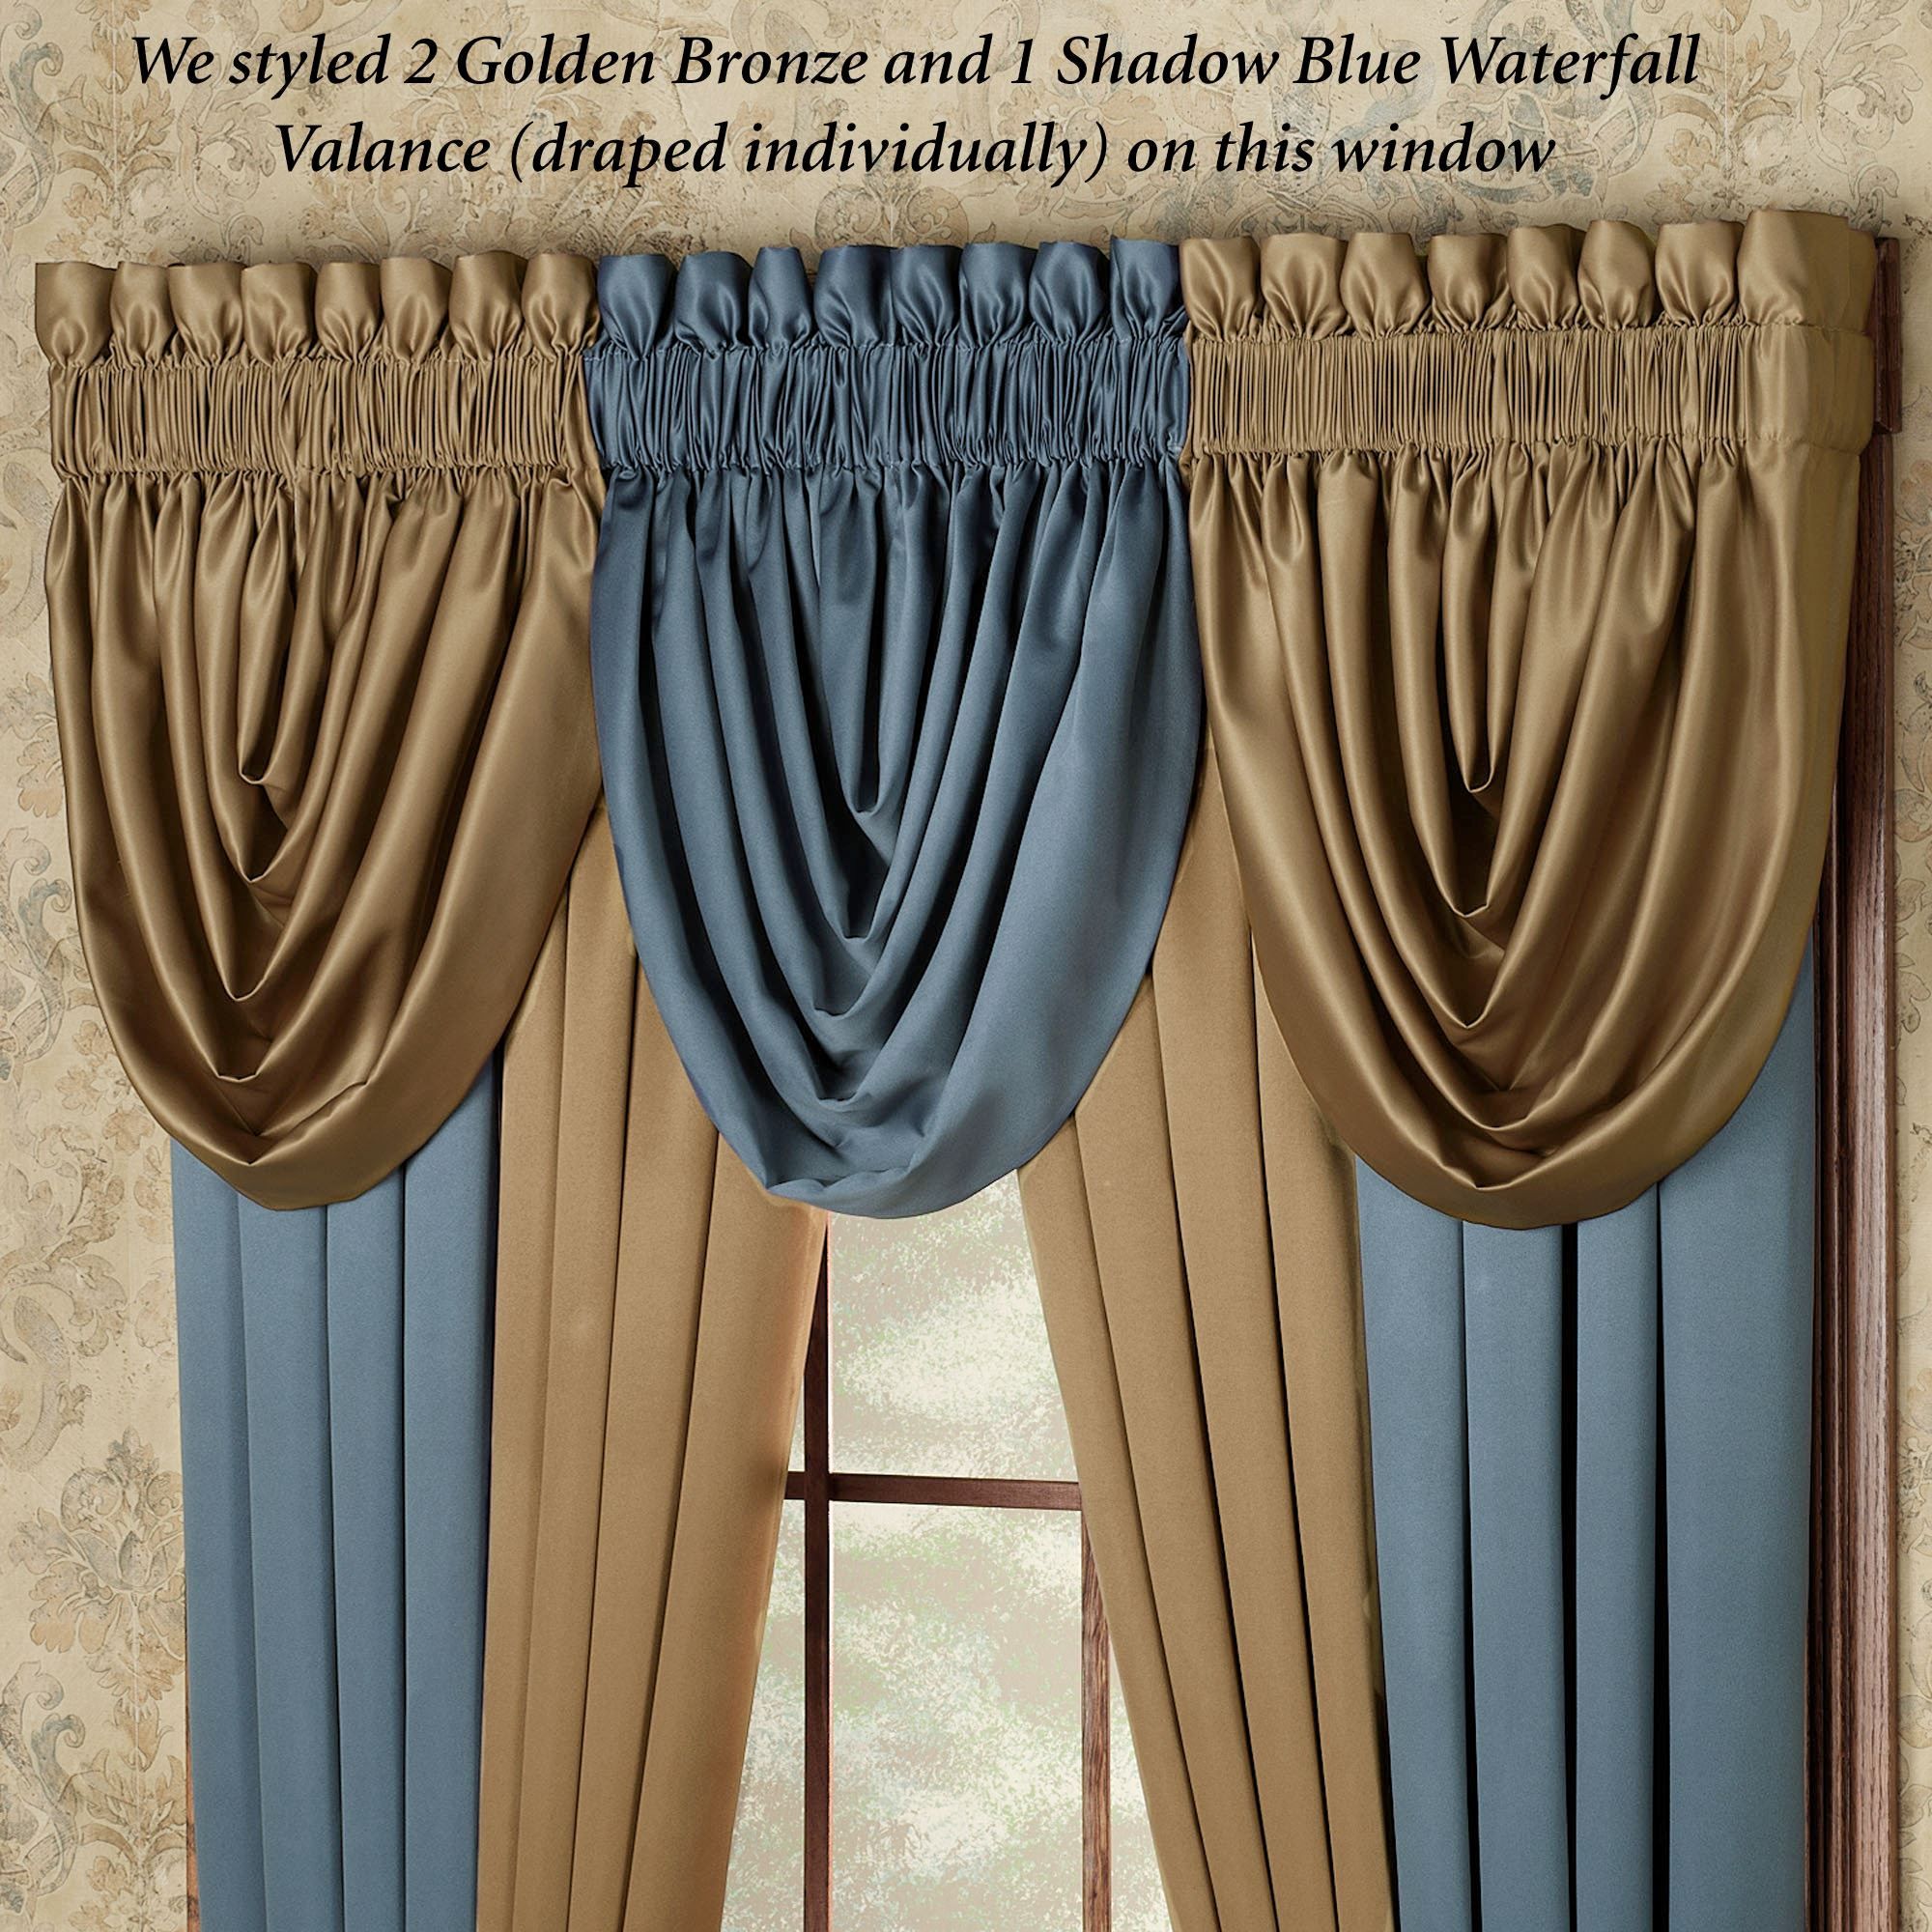 to waterfall by treatment curtain p queen valance expand click tailored butter j york new valances pair windsor window